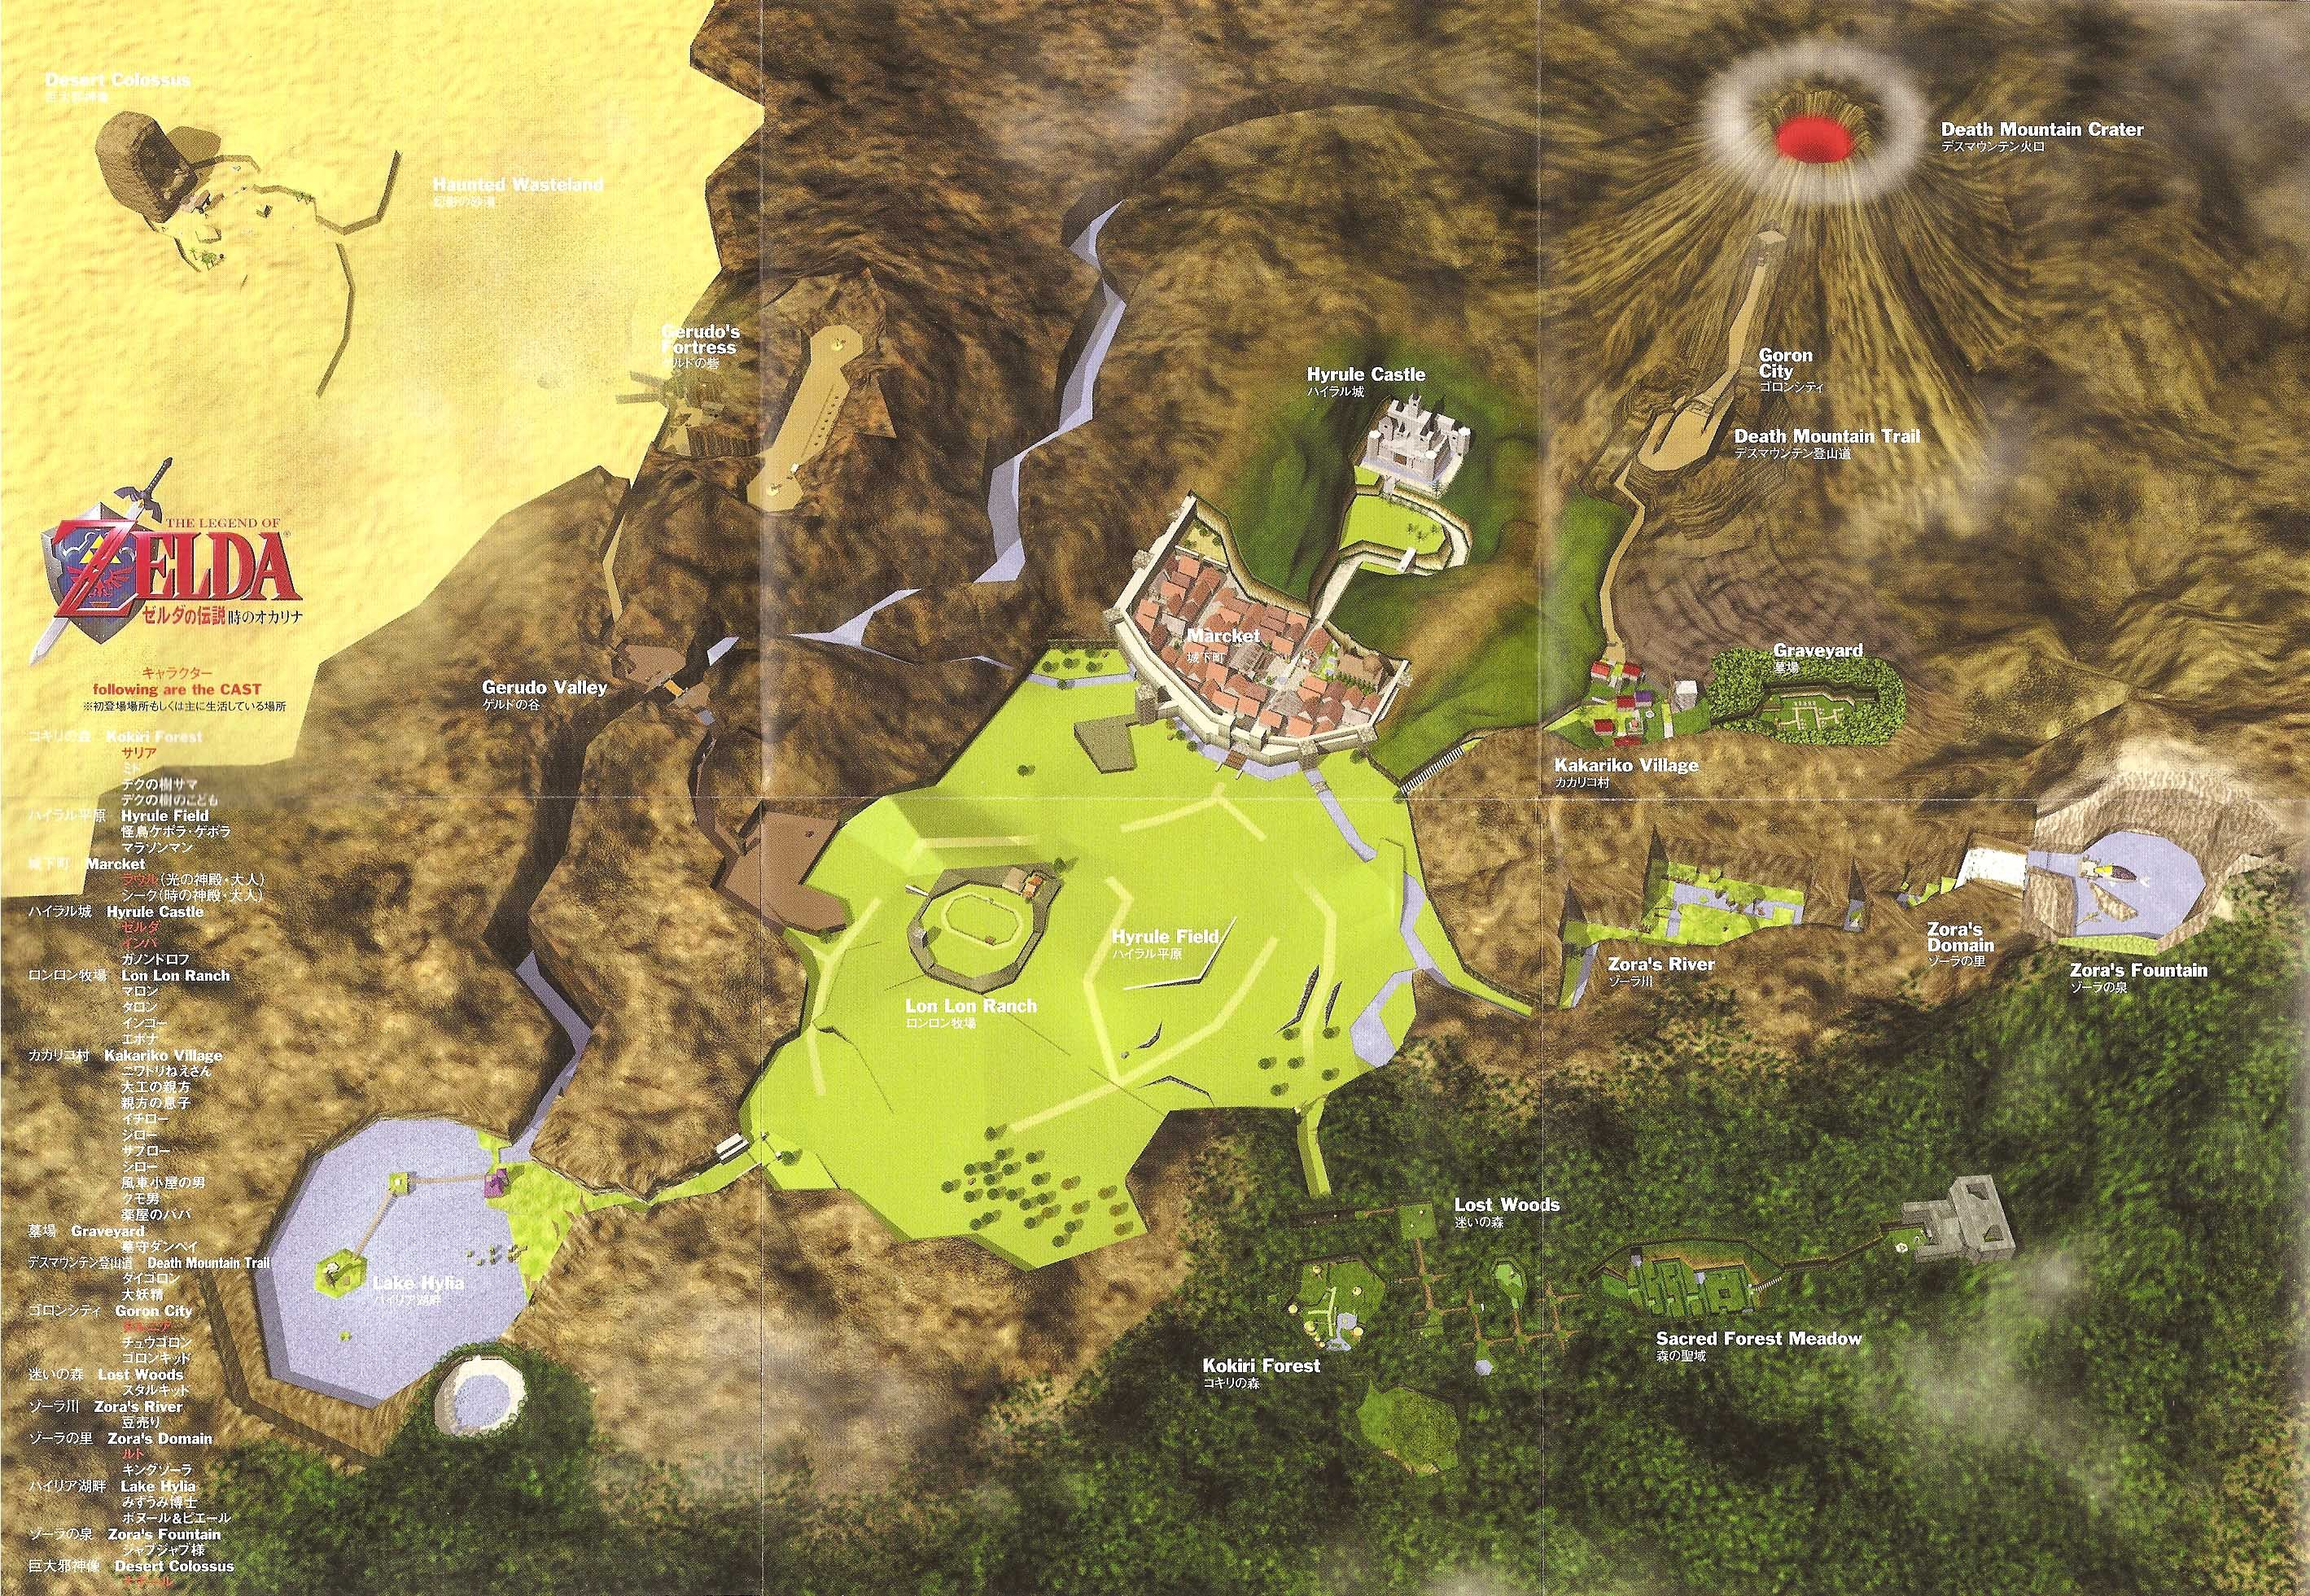 Rare Beta Map Of Oot Overworld Sans The Cloud Coverage Among Other Details Reveals An Overhead View Of Ca Ocarina Of Time Legend Of Zelda Environment Design